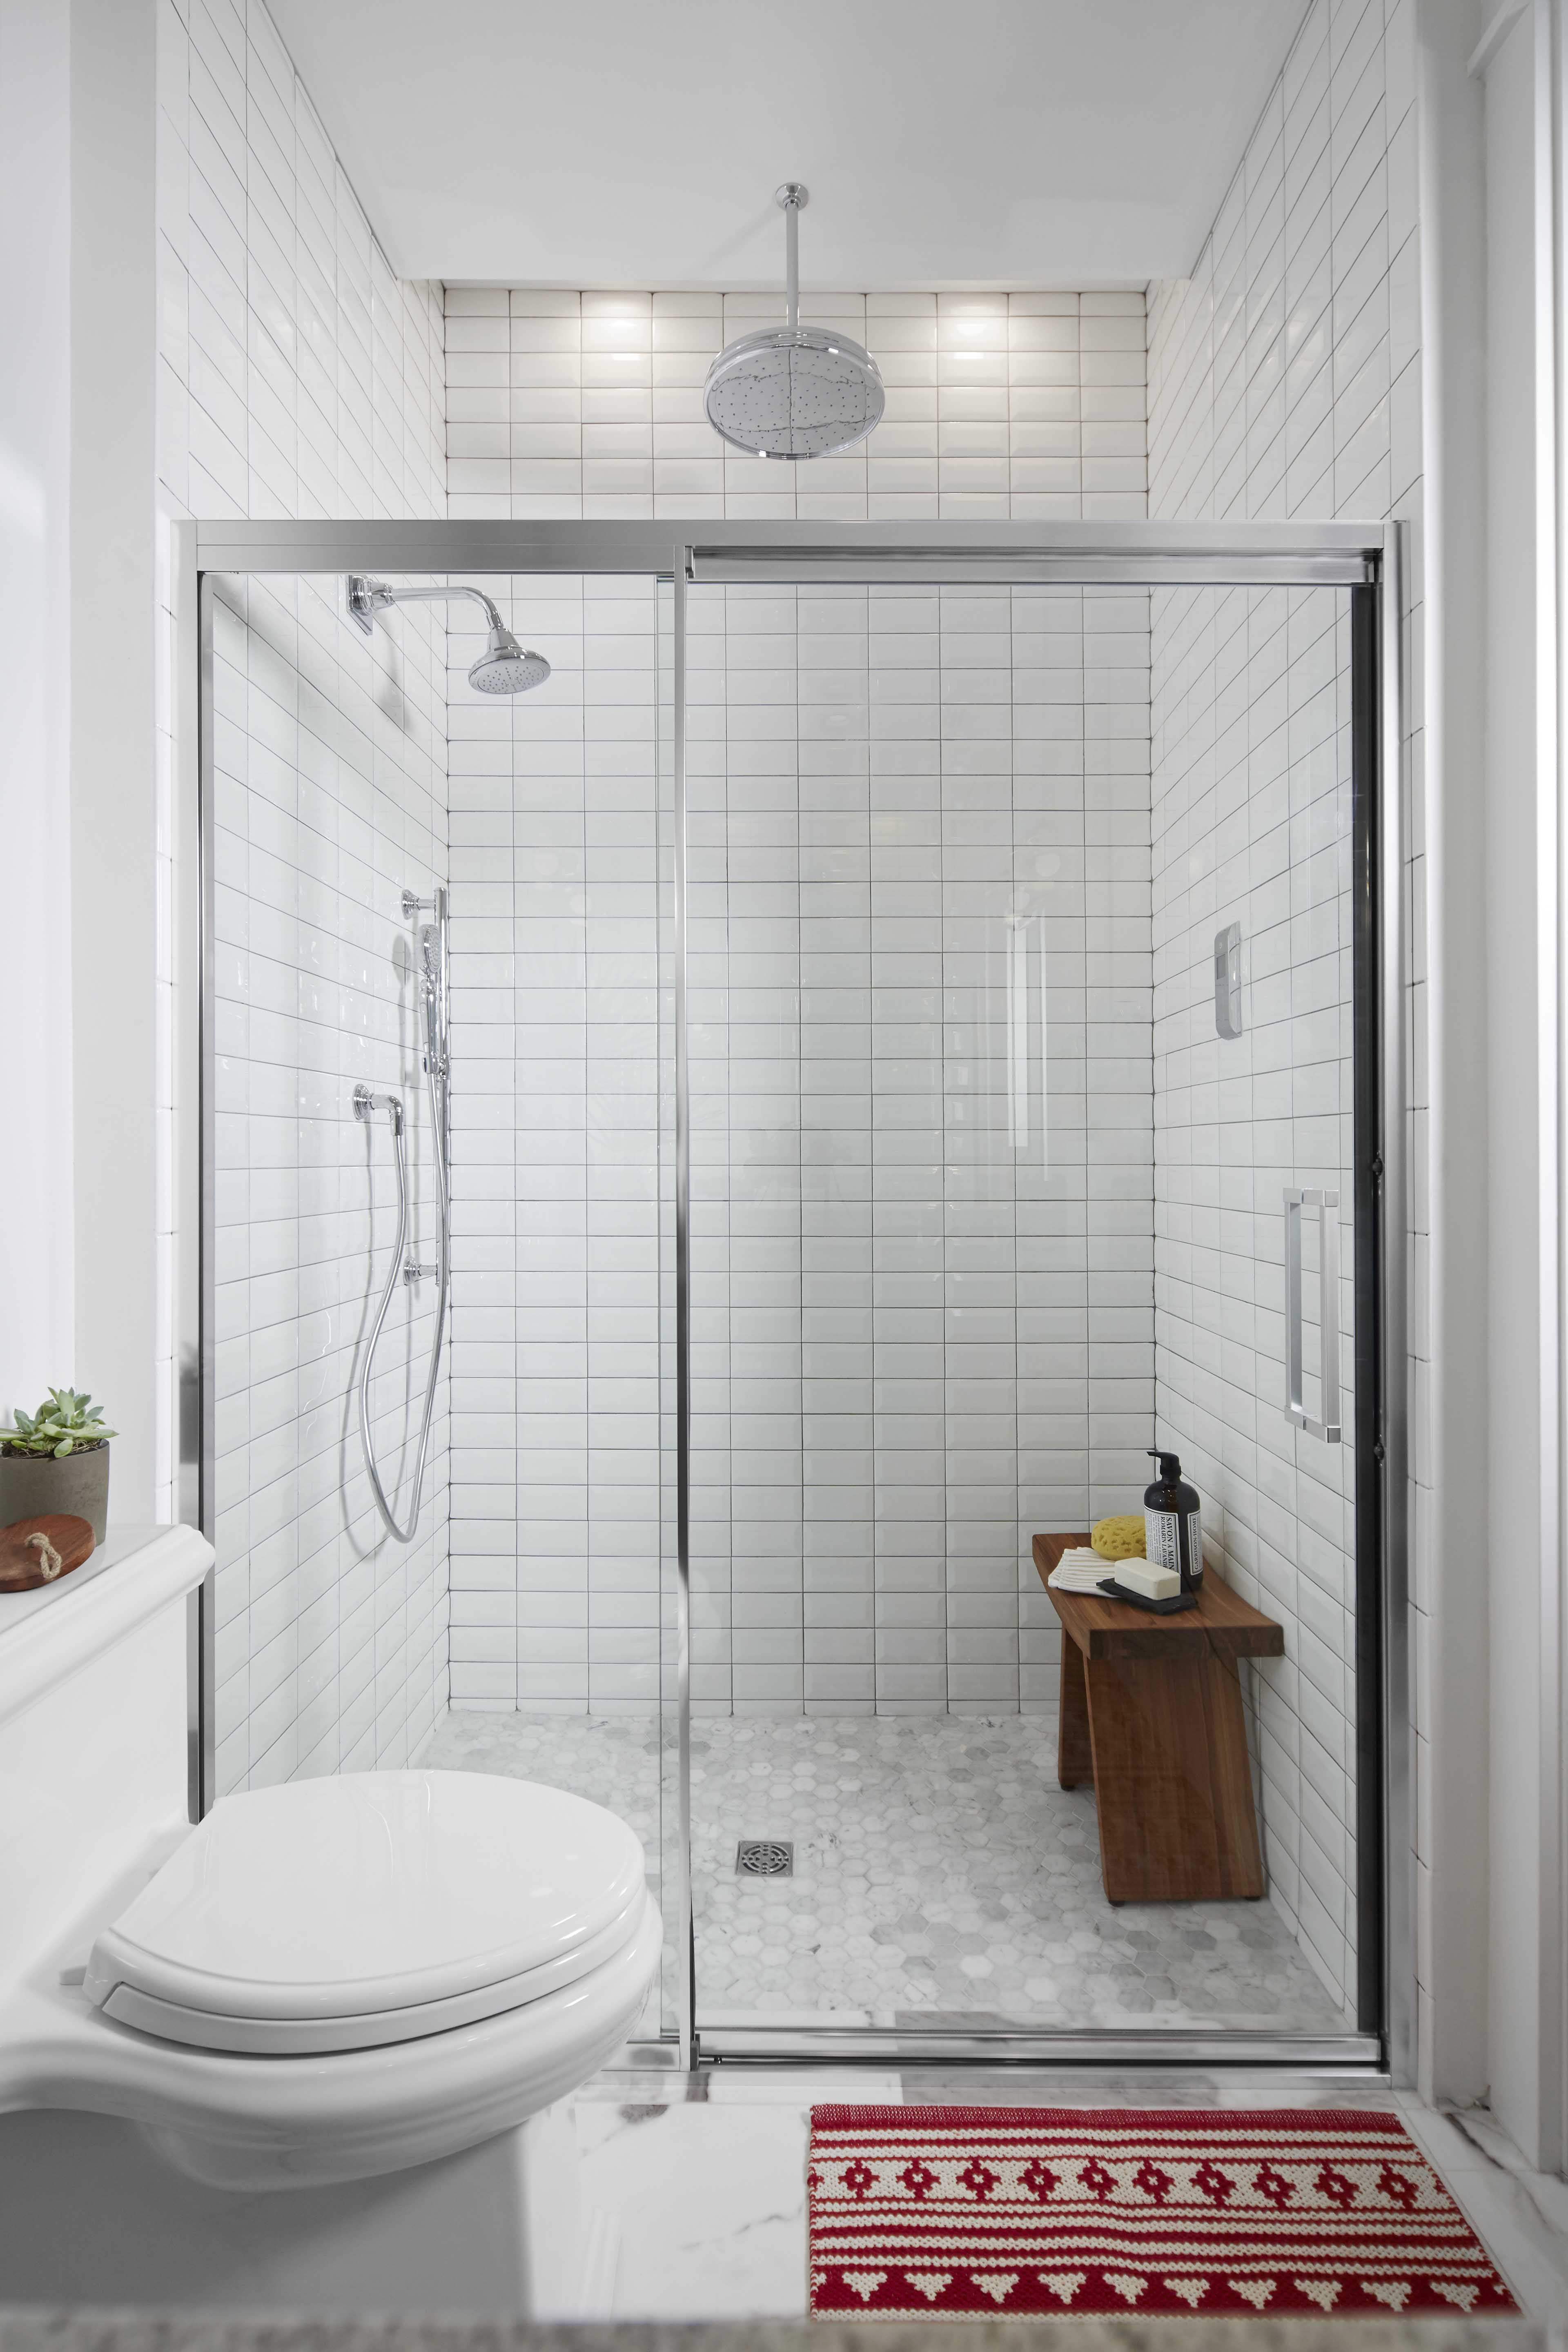 DTV Prompt Digital Control     Traditional Rainhead     Artifacts Handshower     Pinstripe Showerhead     A digital shower system allows guests to create a personalized experience, choosing between or combining a rainshower, showerhead and handshower.